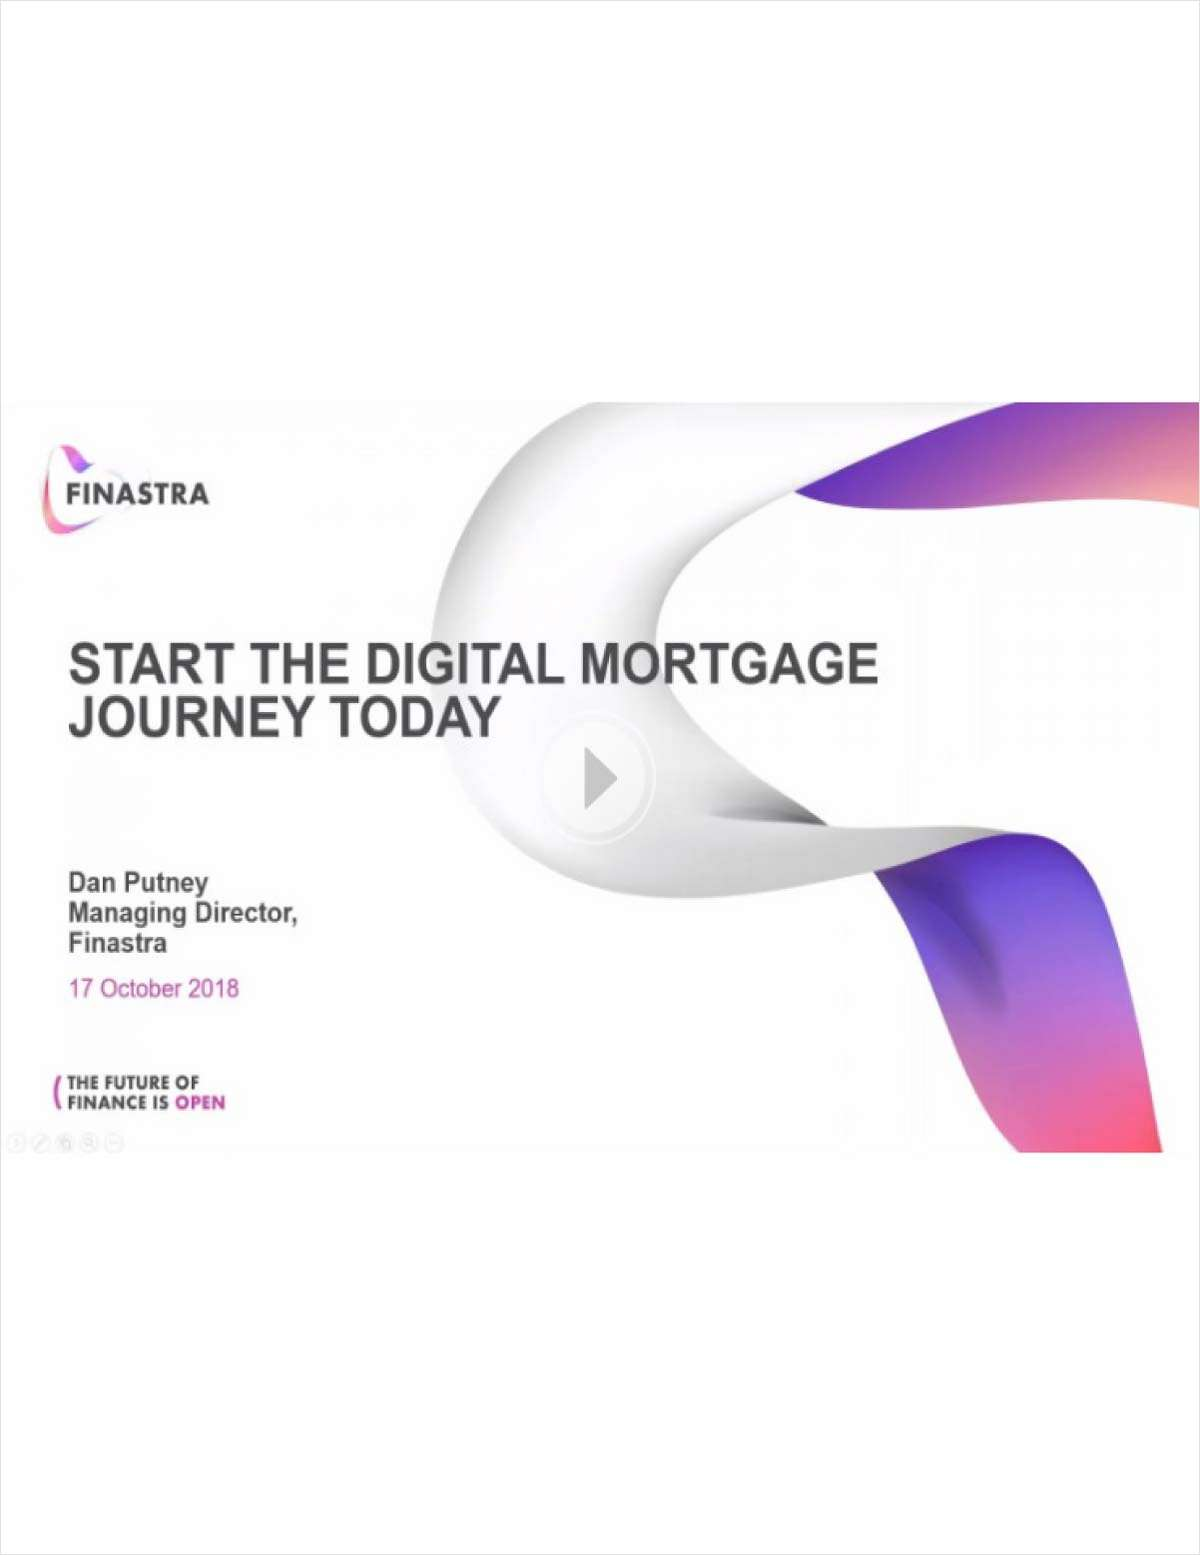 6 Steps to Start Your Credit Union's Digital Mortgage Journey